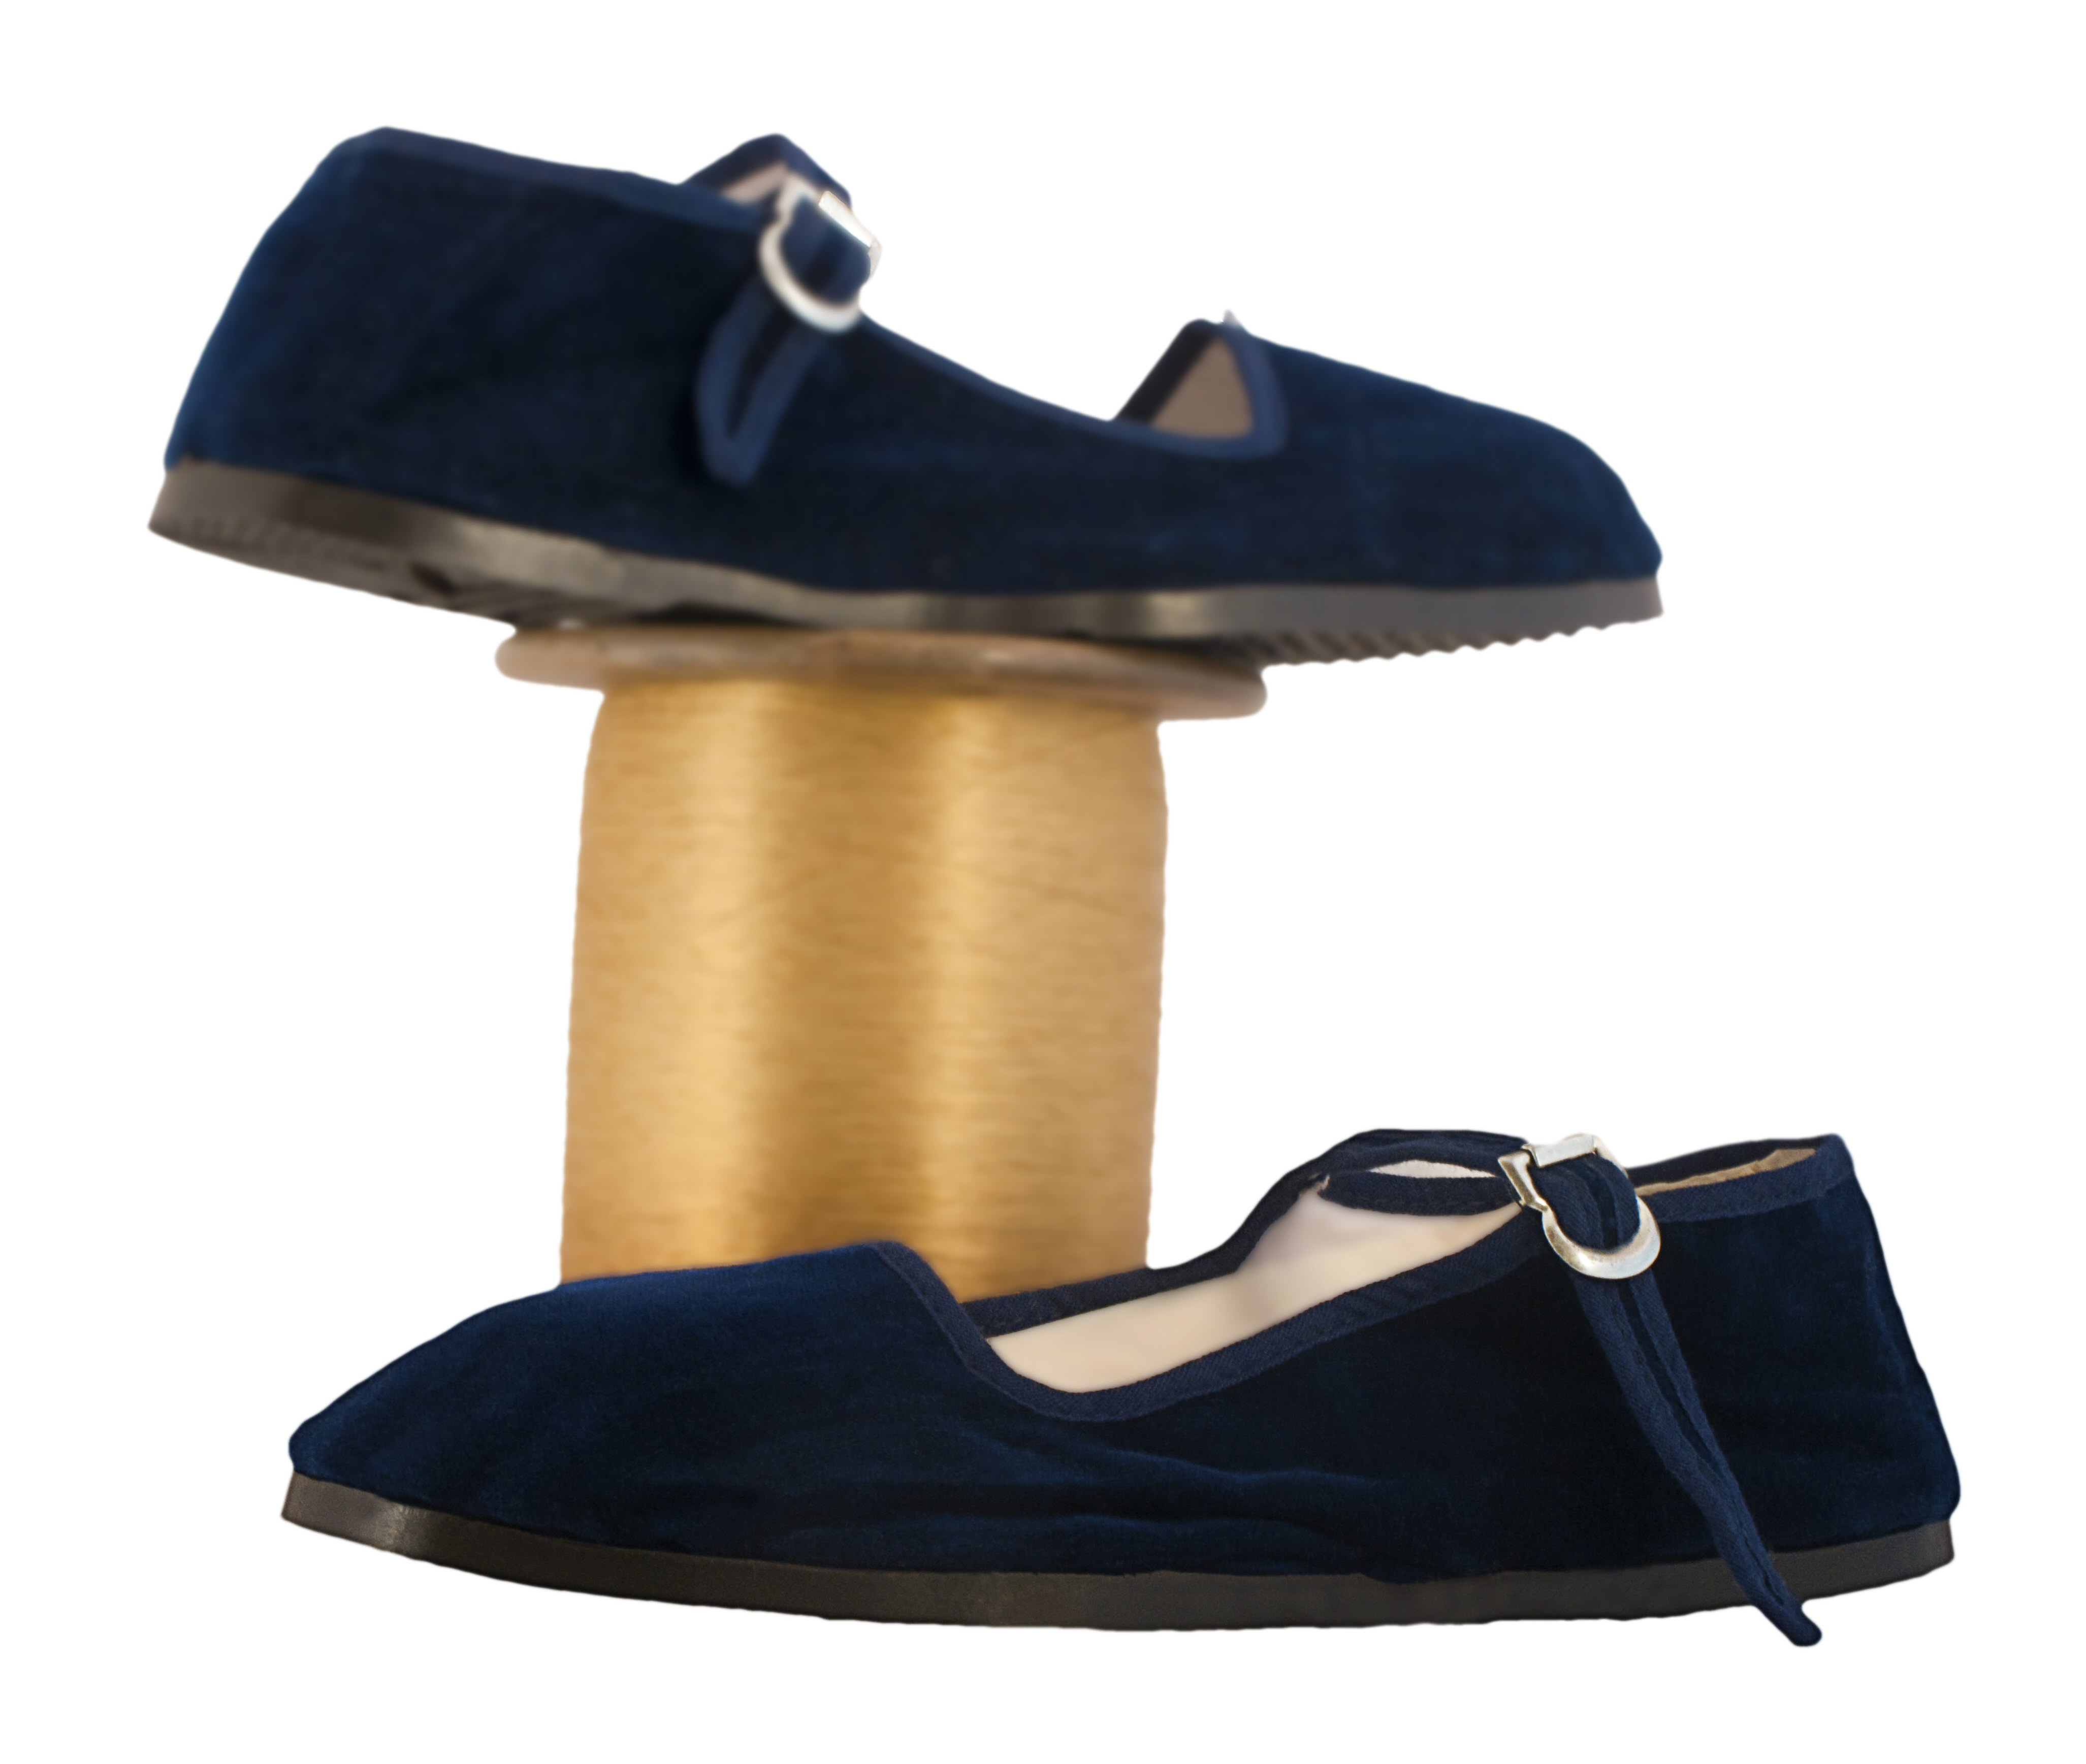 Womens Renaissance style shoes in blue velvet, four other colors available